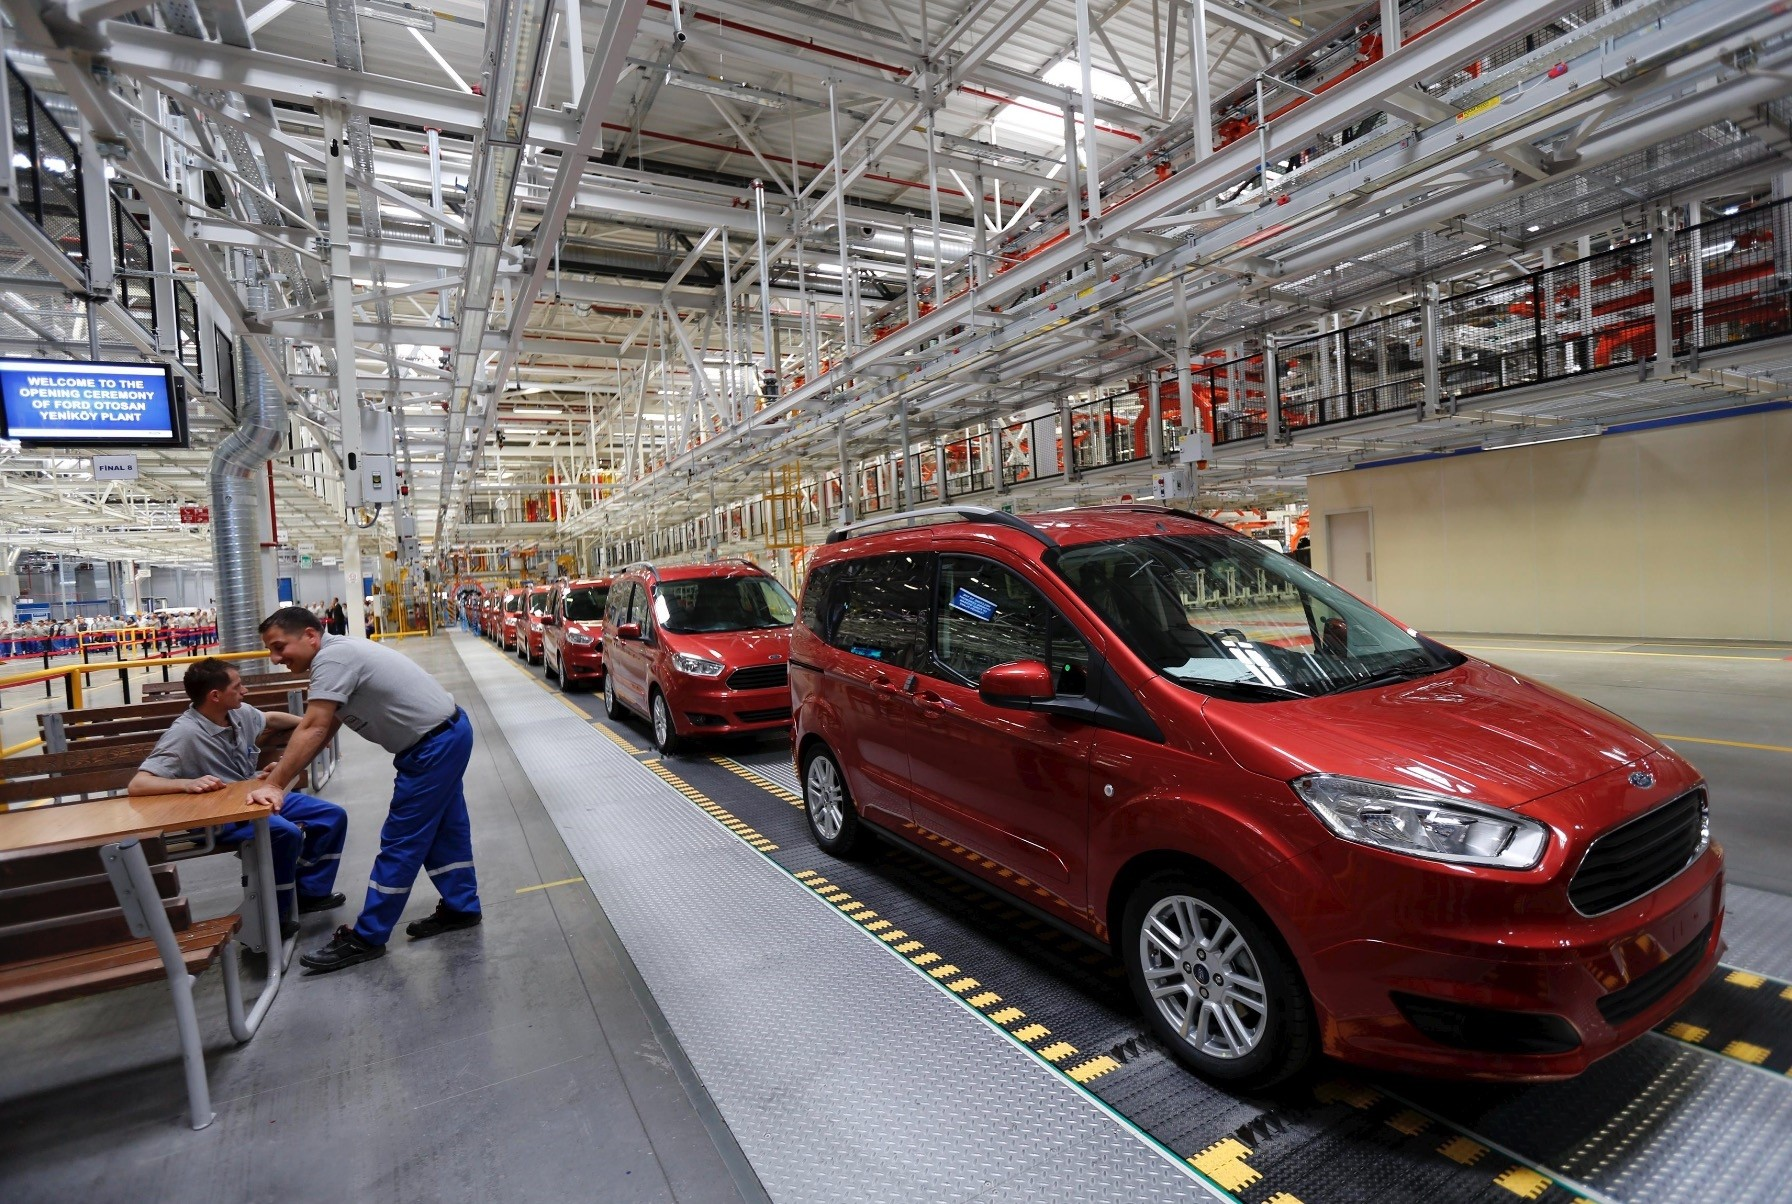 The Turkish automotive sector had the largest share in Turkey's total exports with 18.8 percent, completing the first half of the year as a leader in exports.